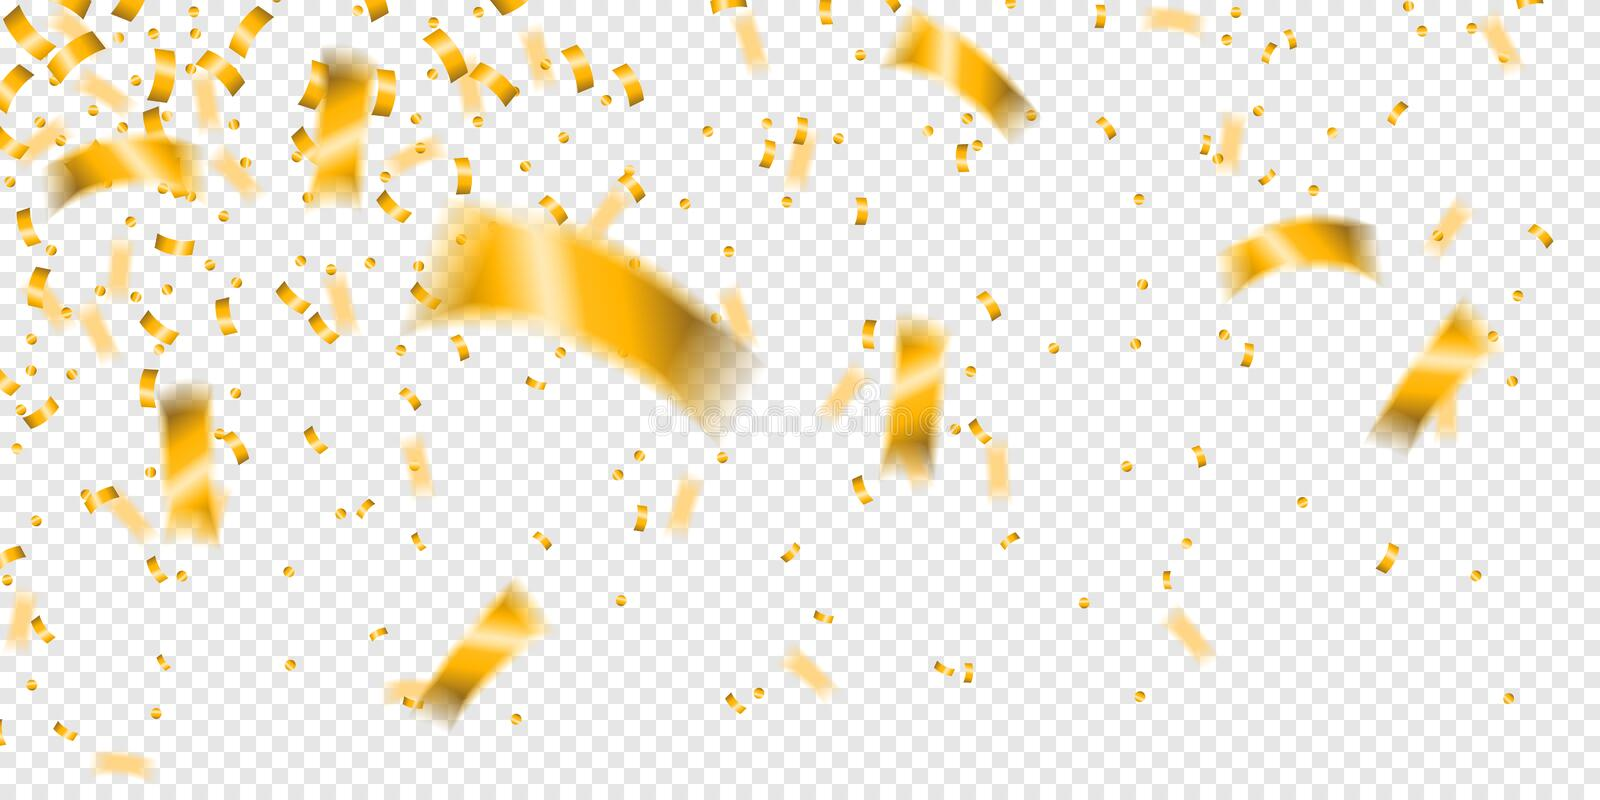 Flying golden confetti isolated transparent background vector stock illustration